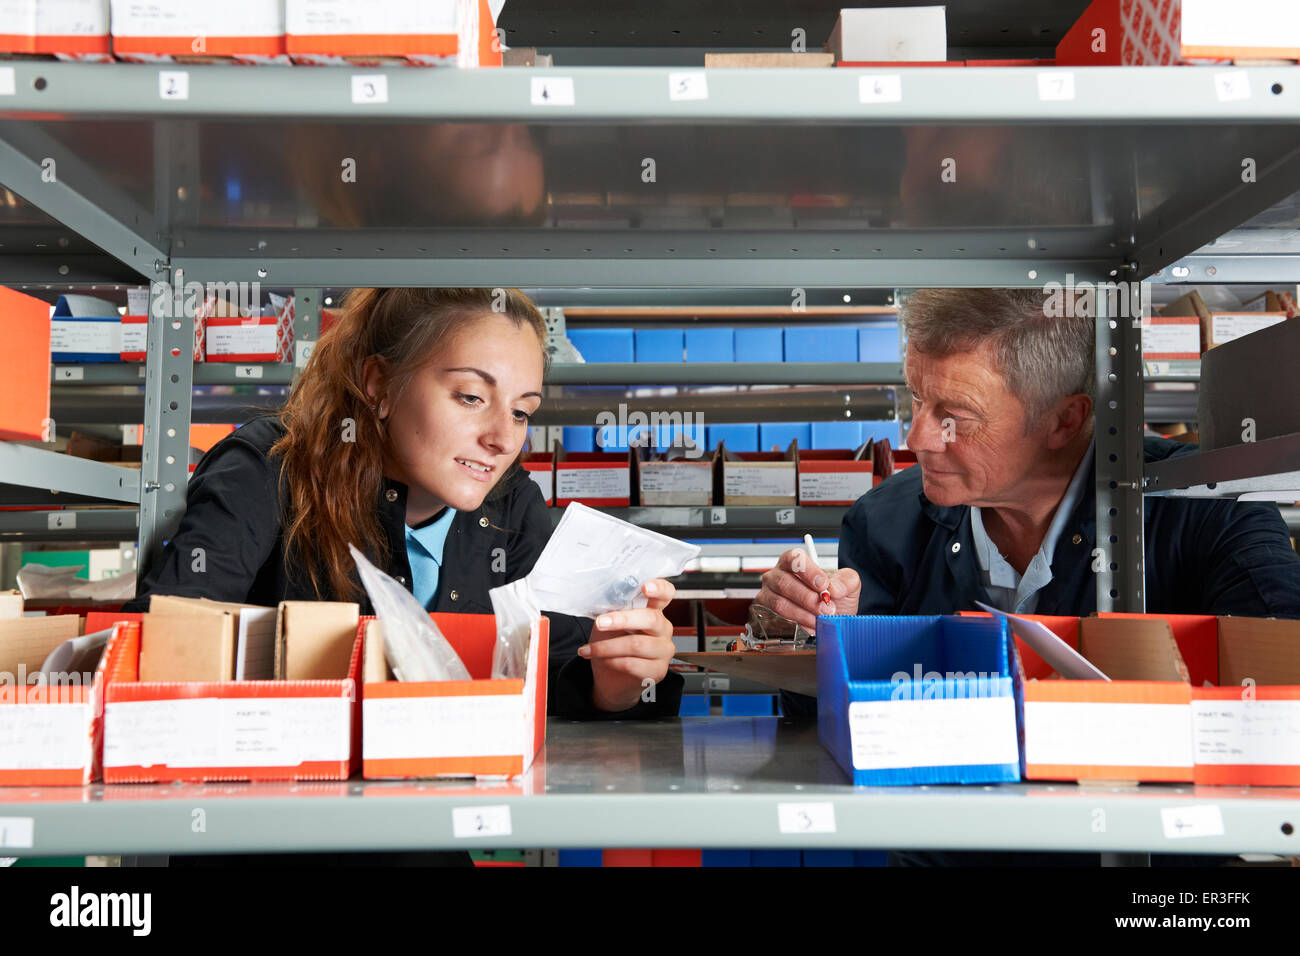 Male Engineer With Female Apprentice Checking Stock Levels - Stock Image